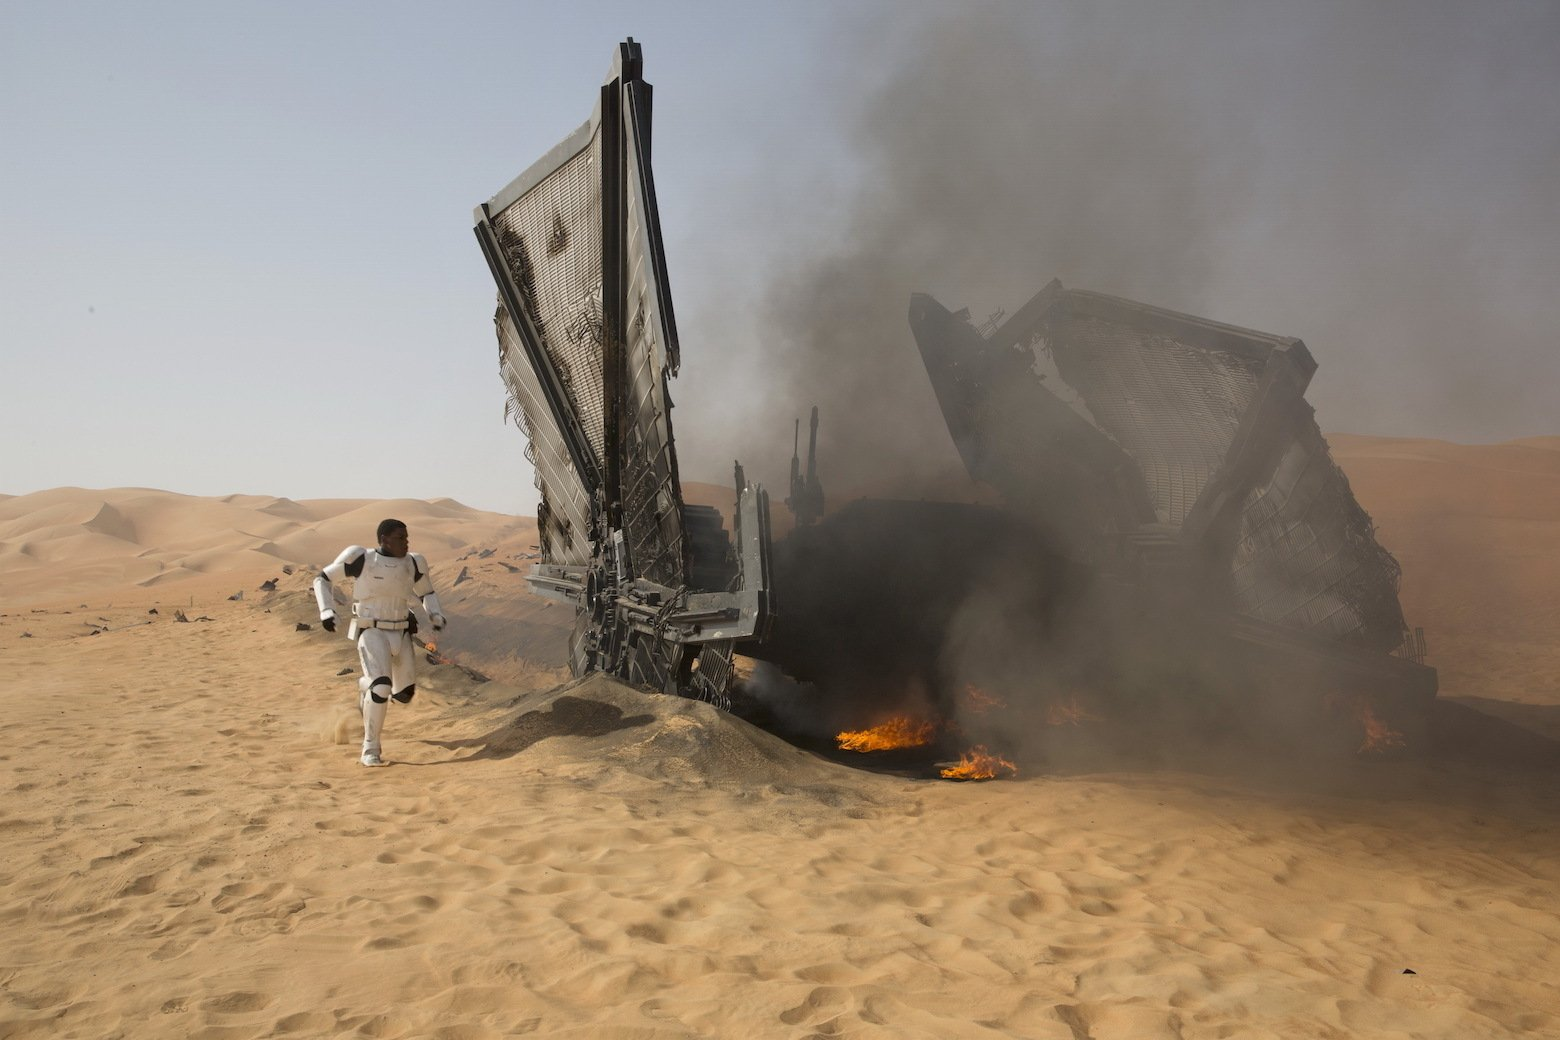 Star Wars VII The Force Awakens 14 - Finn and crashed TIE fighter